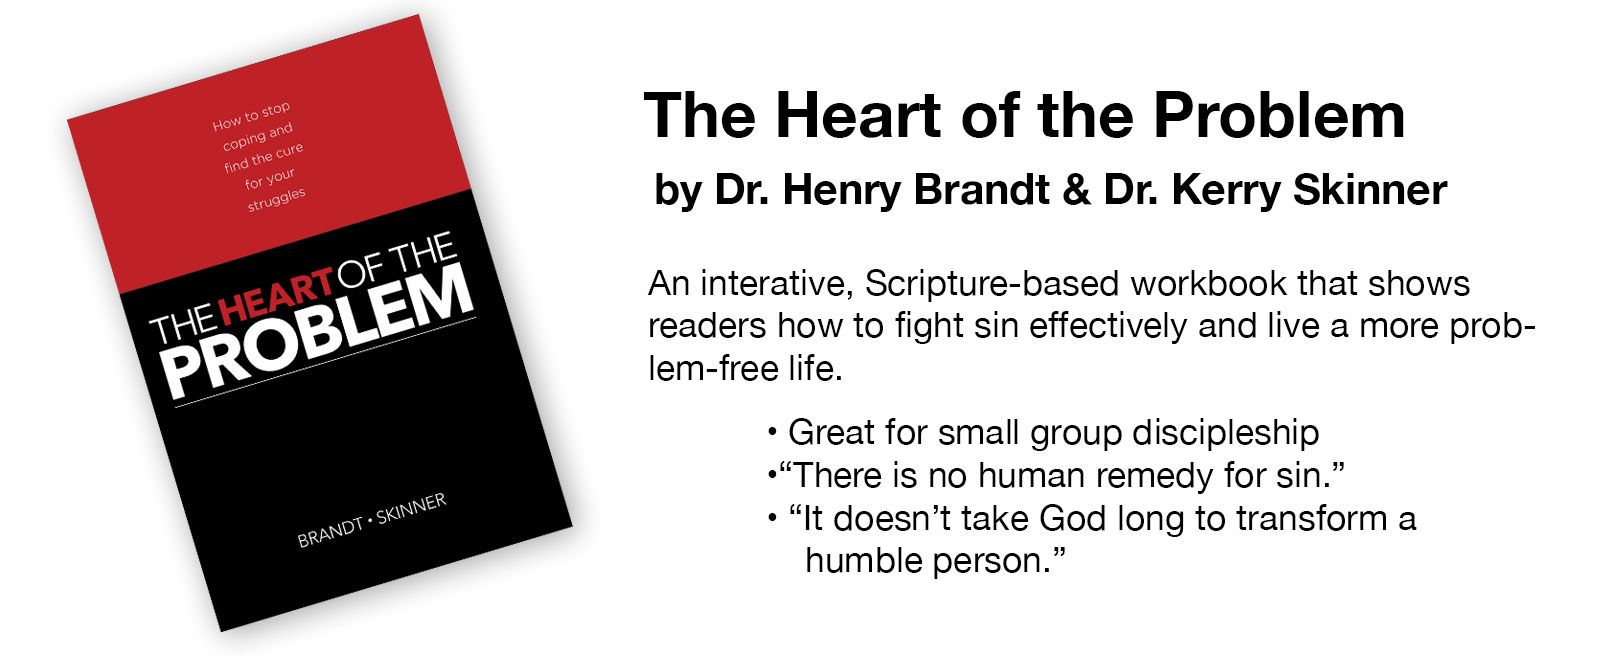 The Heart of the Problem by Dr. Kerry Skinner